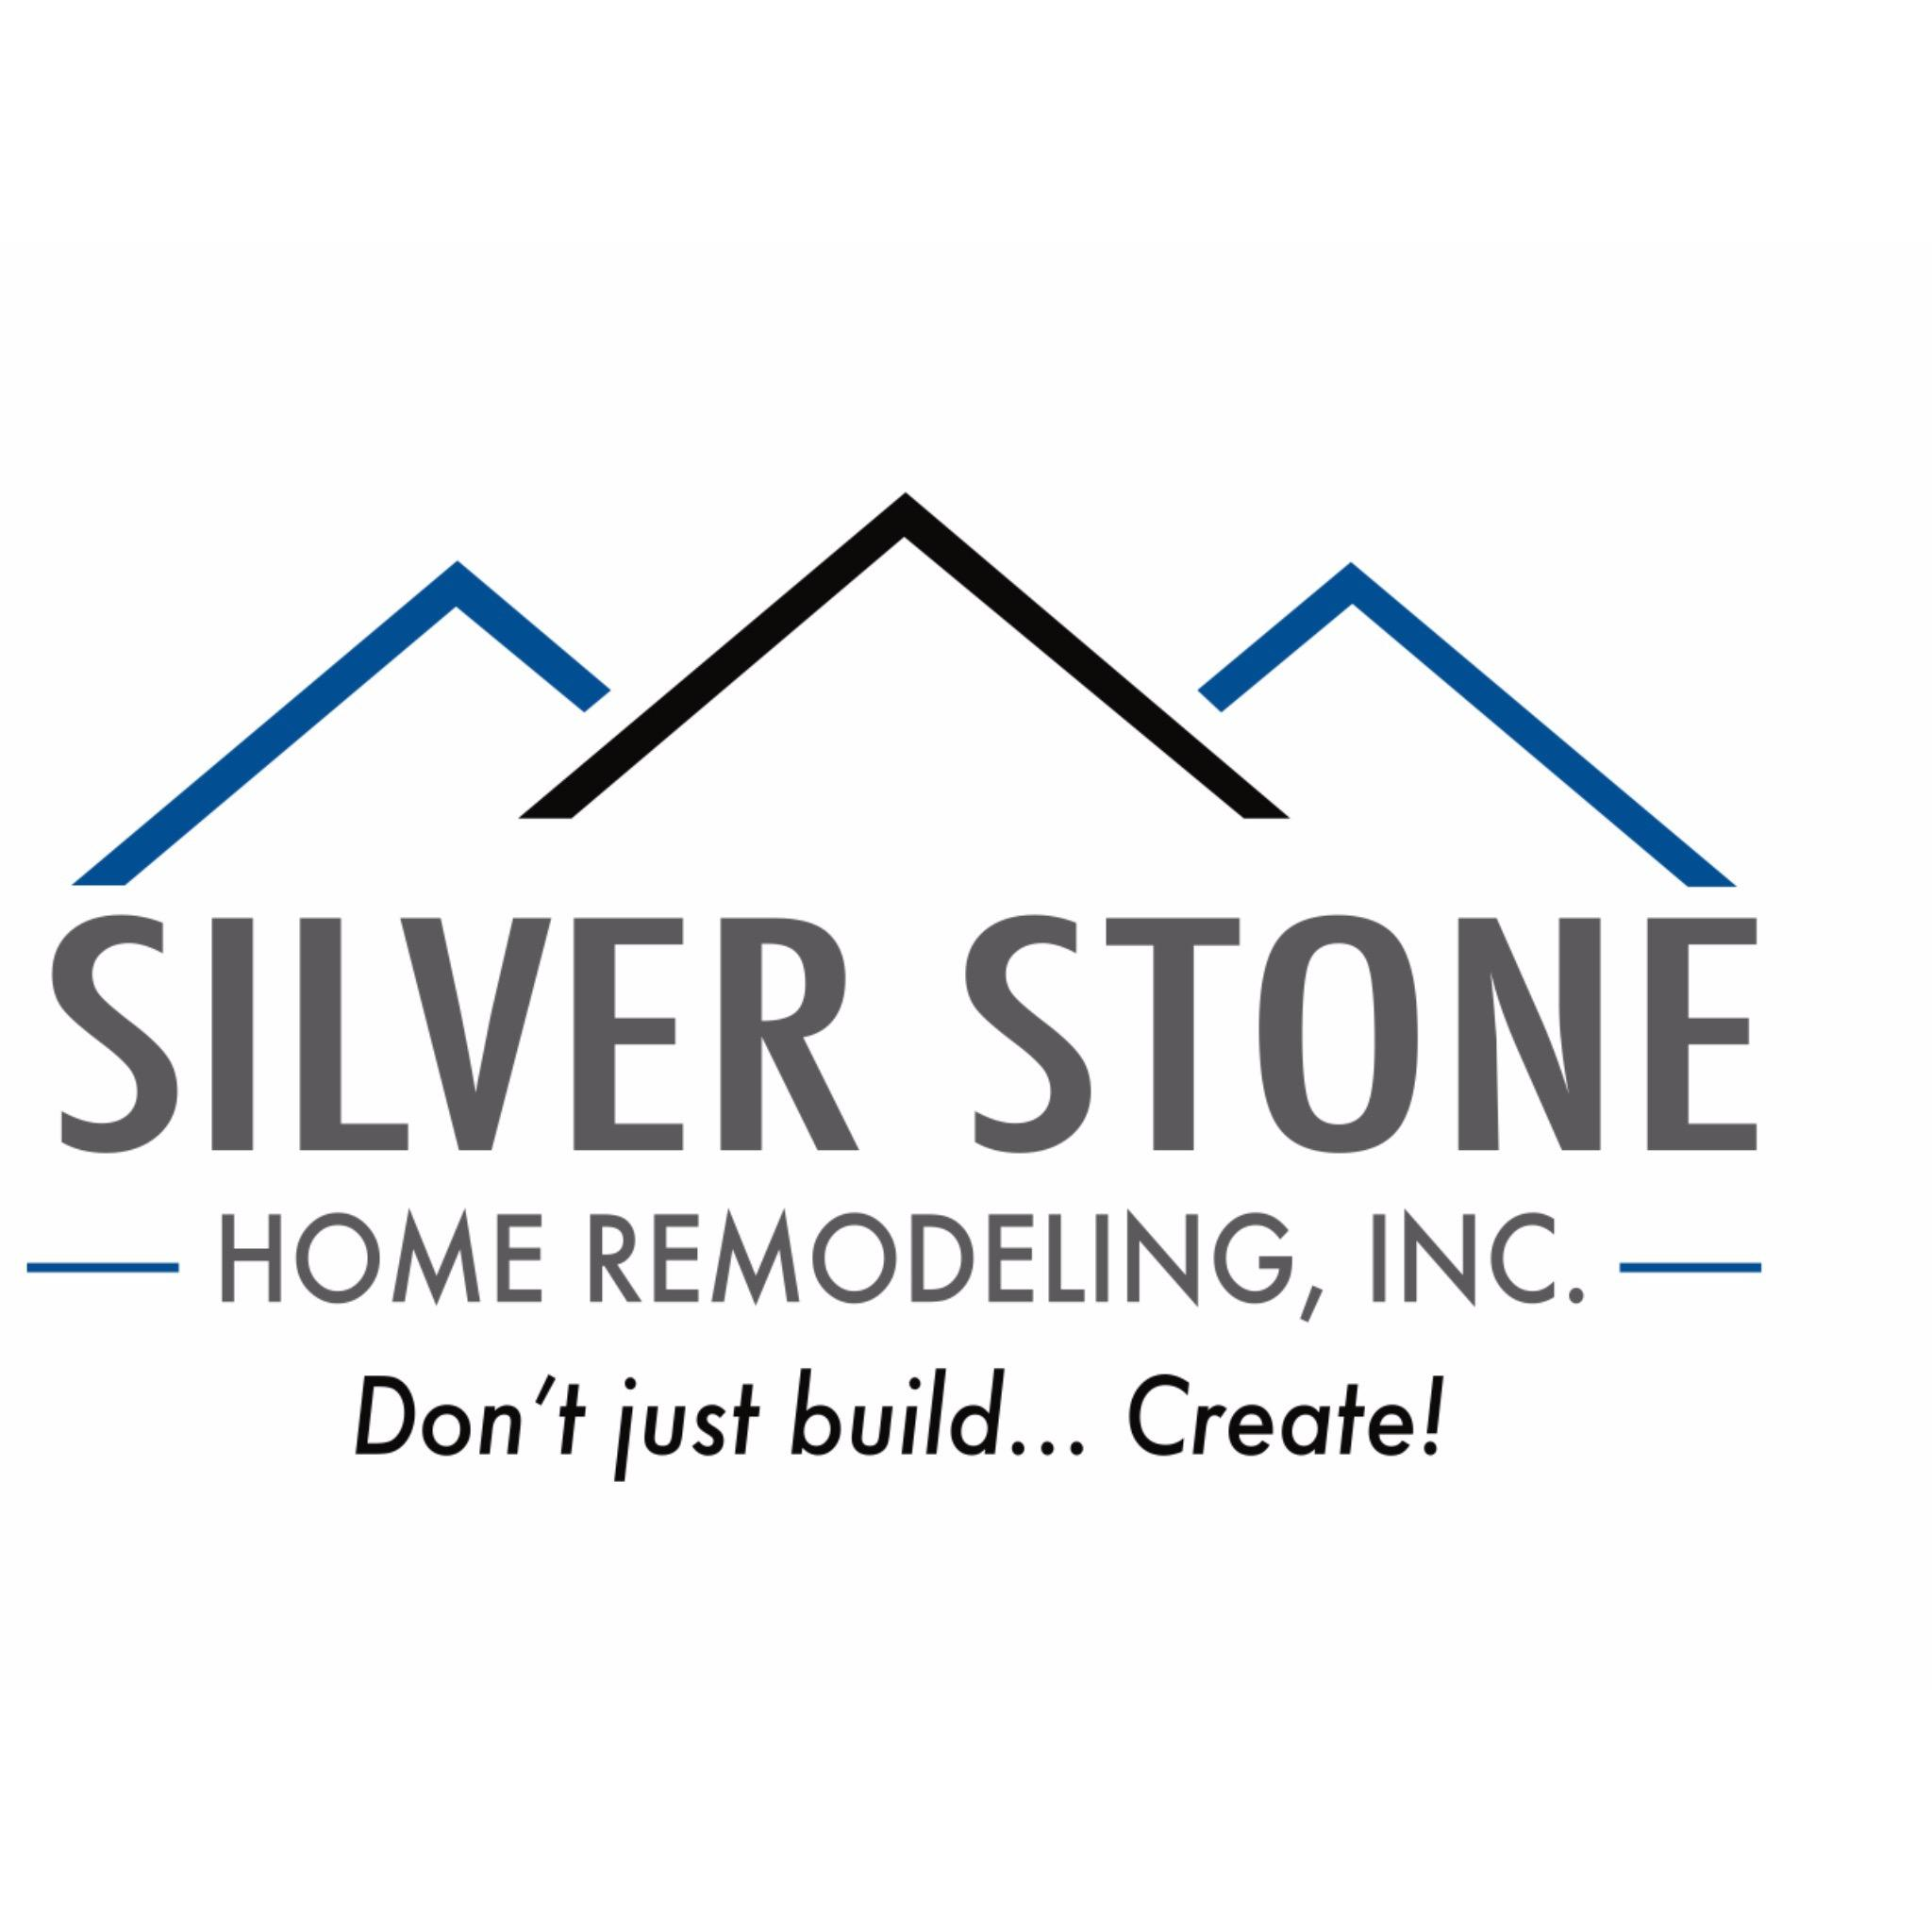 Silver Stone Home Remodeling Inc.